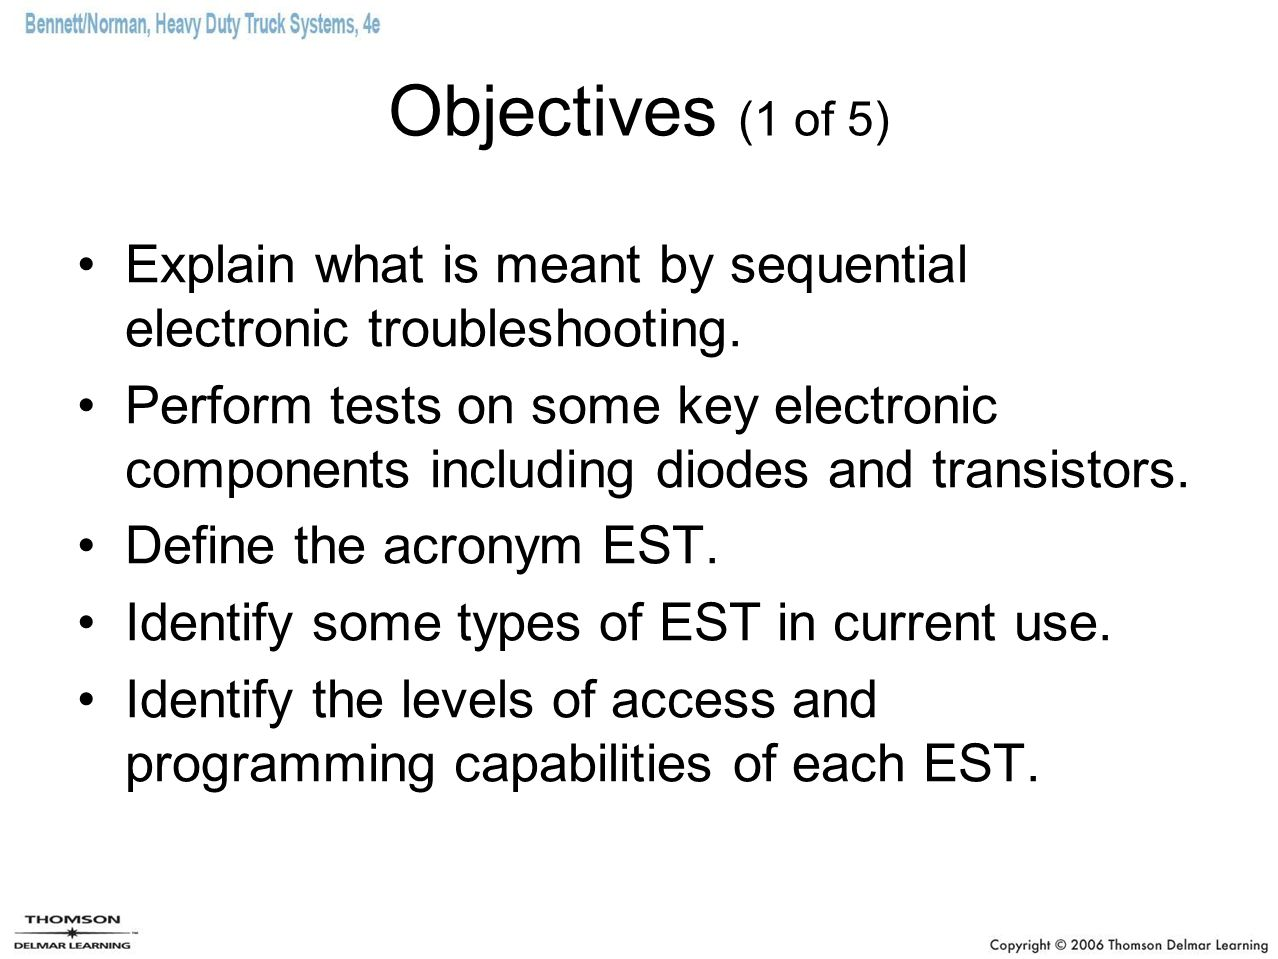 Diagnosis And Repair Of Electronic Circuits Ppt Video Online Download What Are Circuit Objectives 1 5 Explain Is Meant By Sequential Troubleshooting